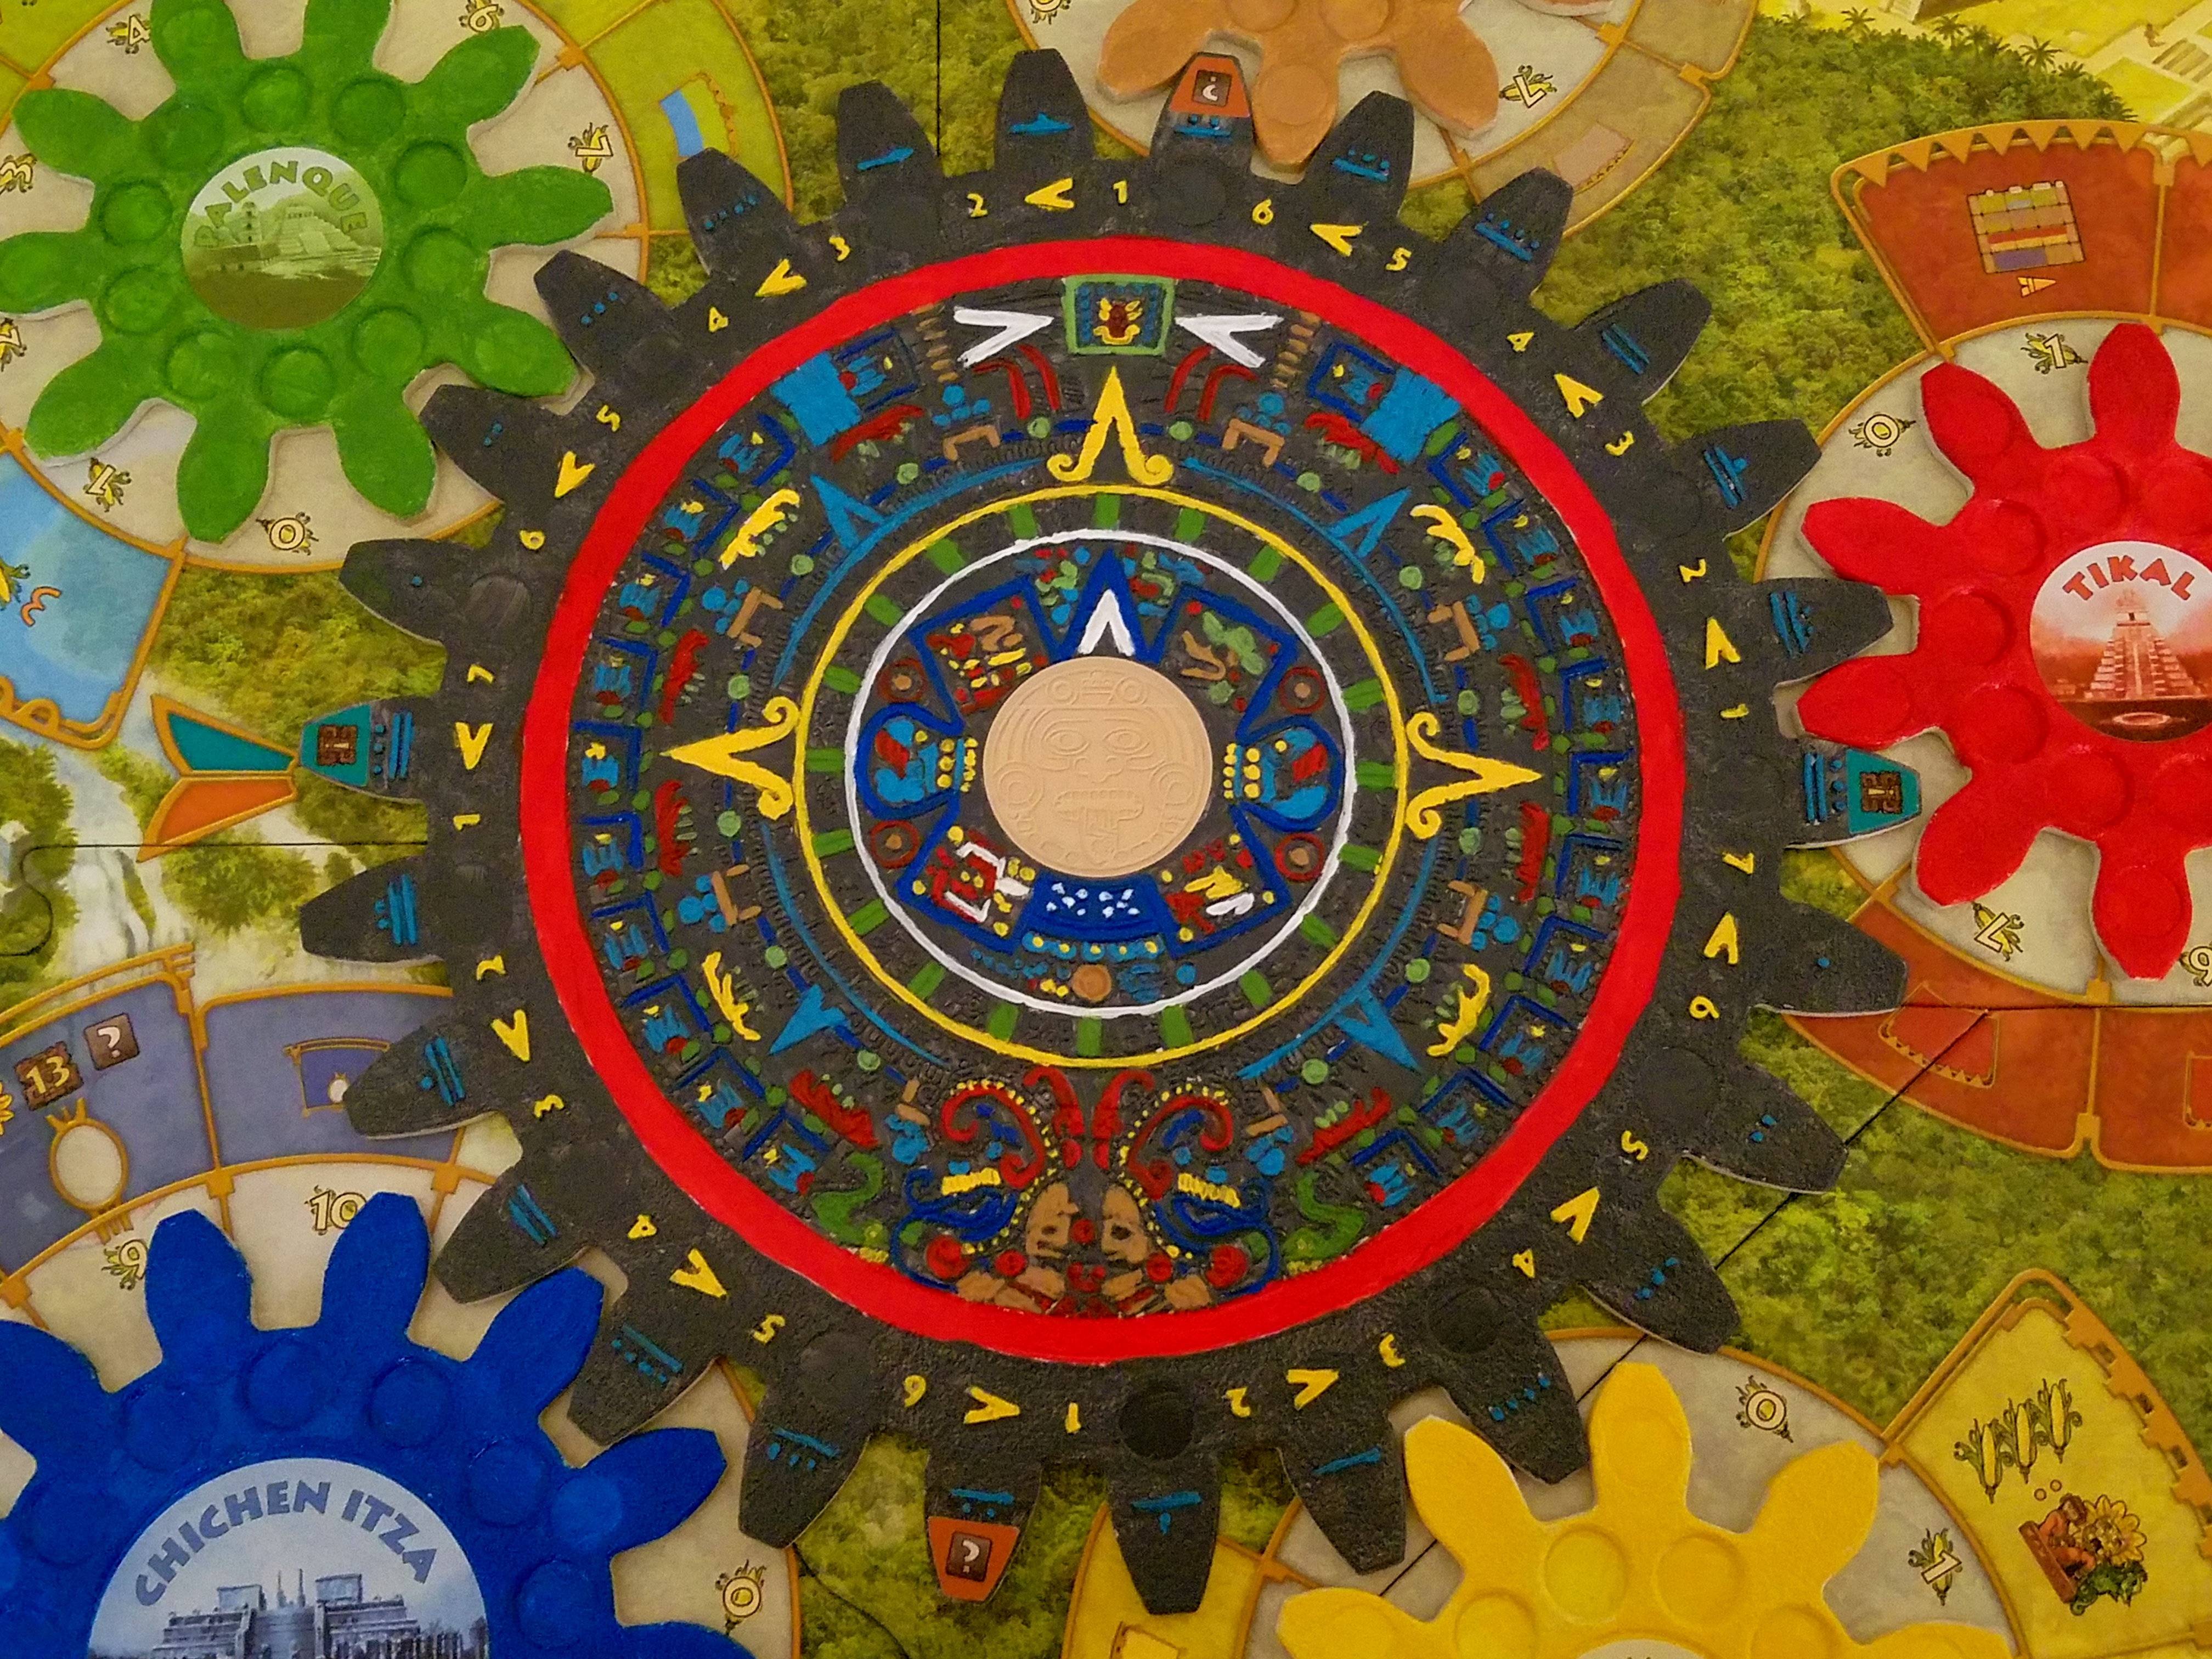 Heres A Closeup Of The Final Paint Job On Mayan Calendar Which Is